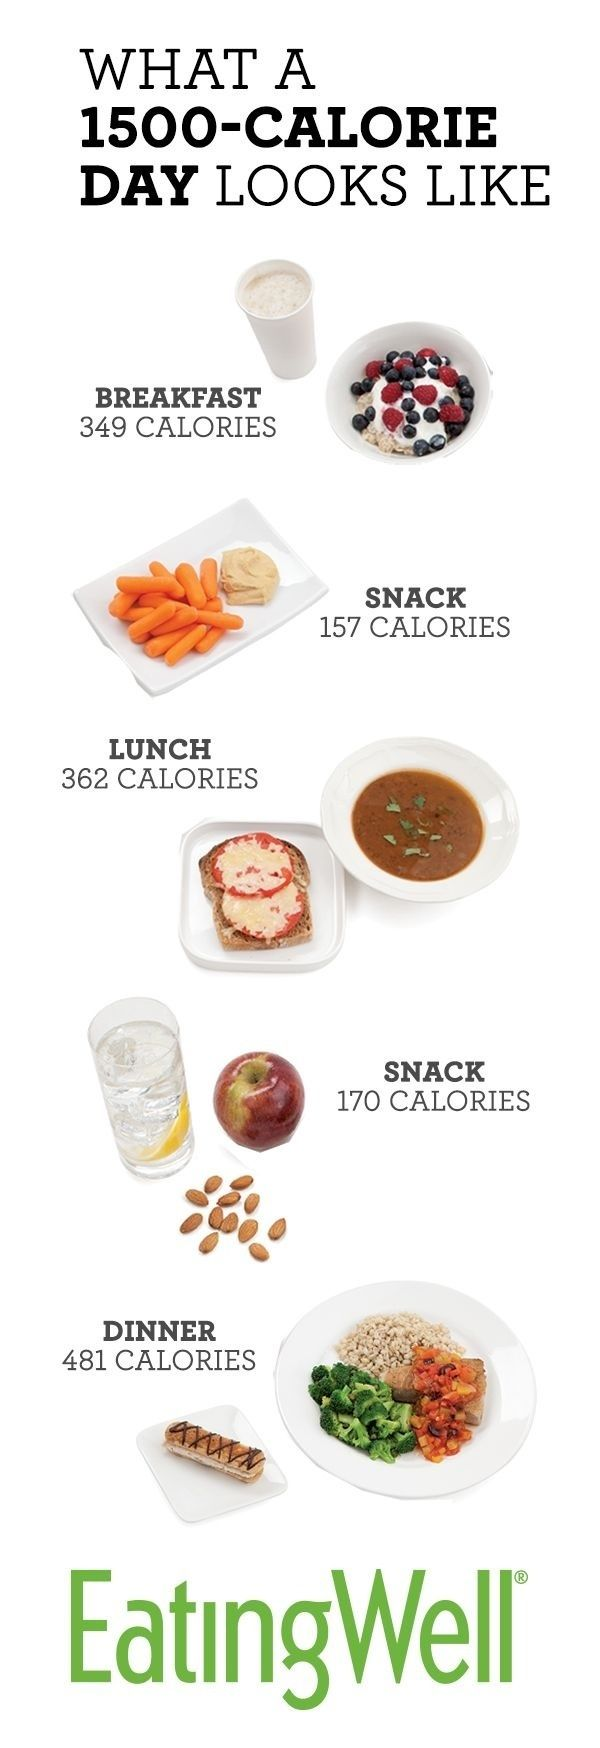 Do you know what makes up a 1,500 calorie day?